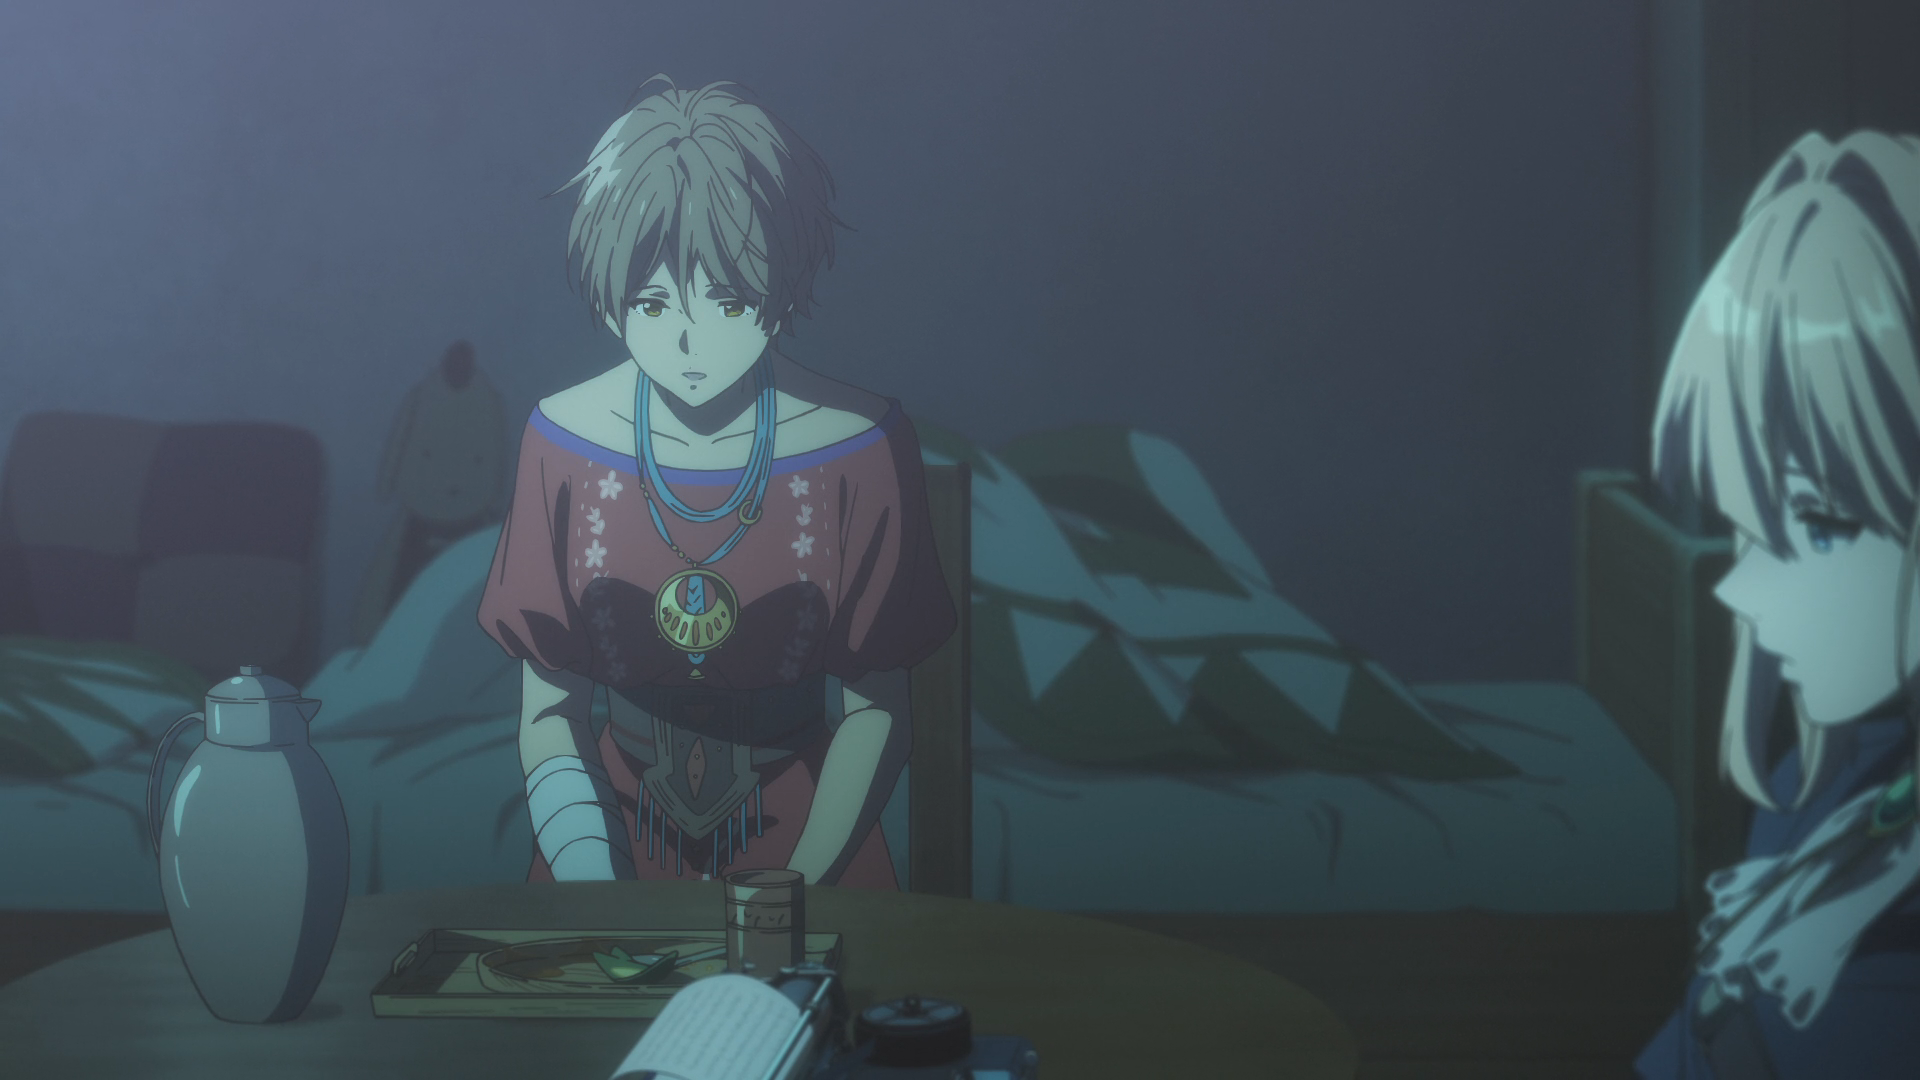 violet-evergarden-episodio-02-08-3